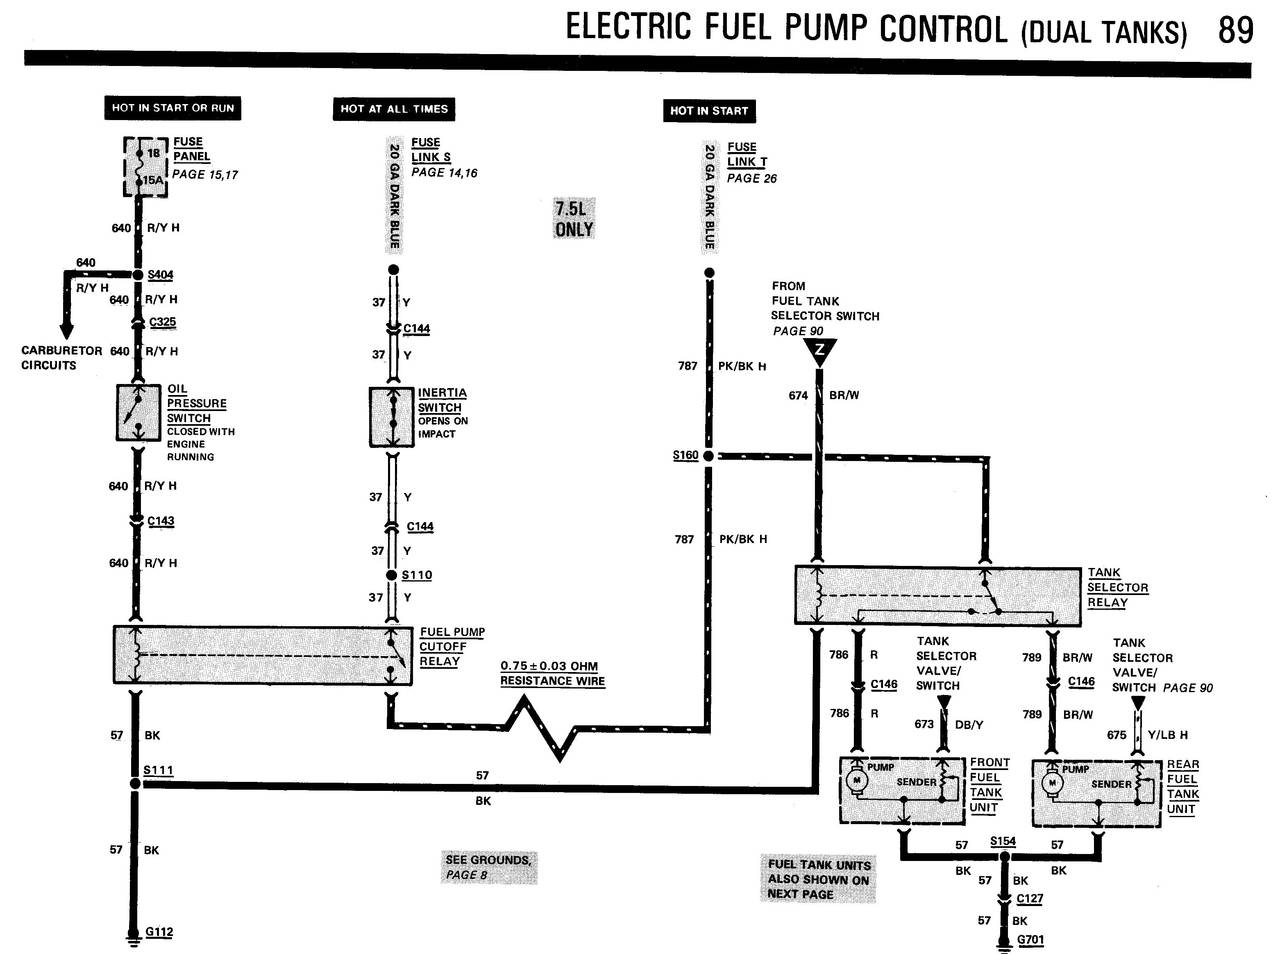 1984 Bronco/F150-350 Electrical and Vacuum Trouble